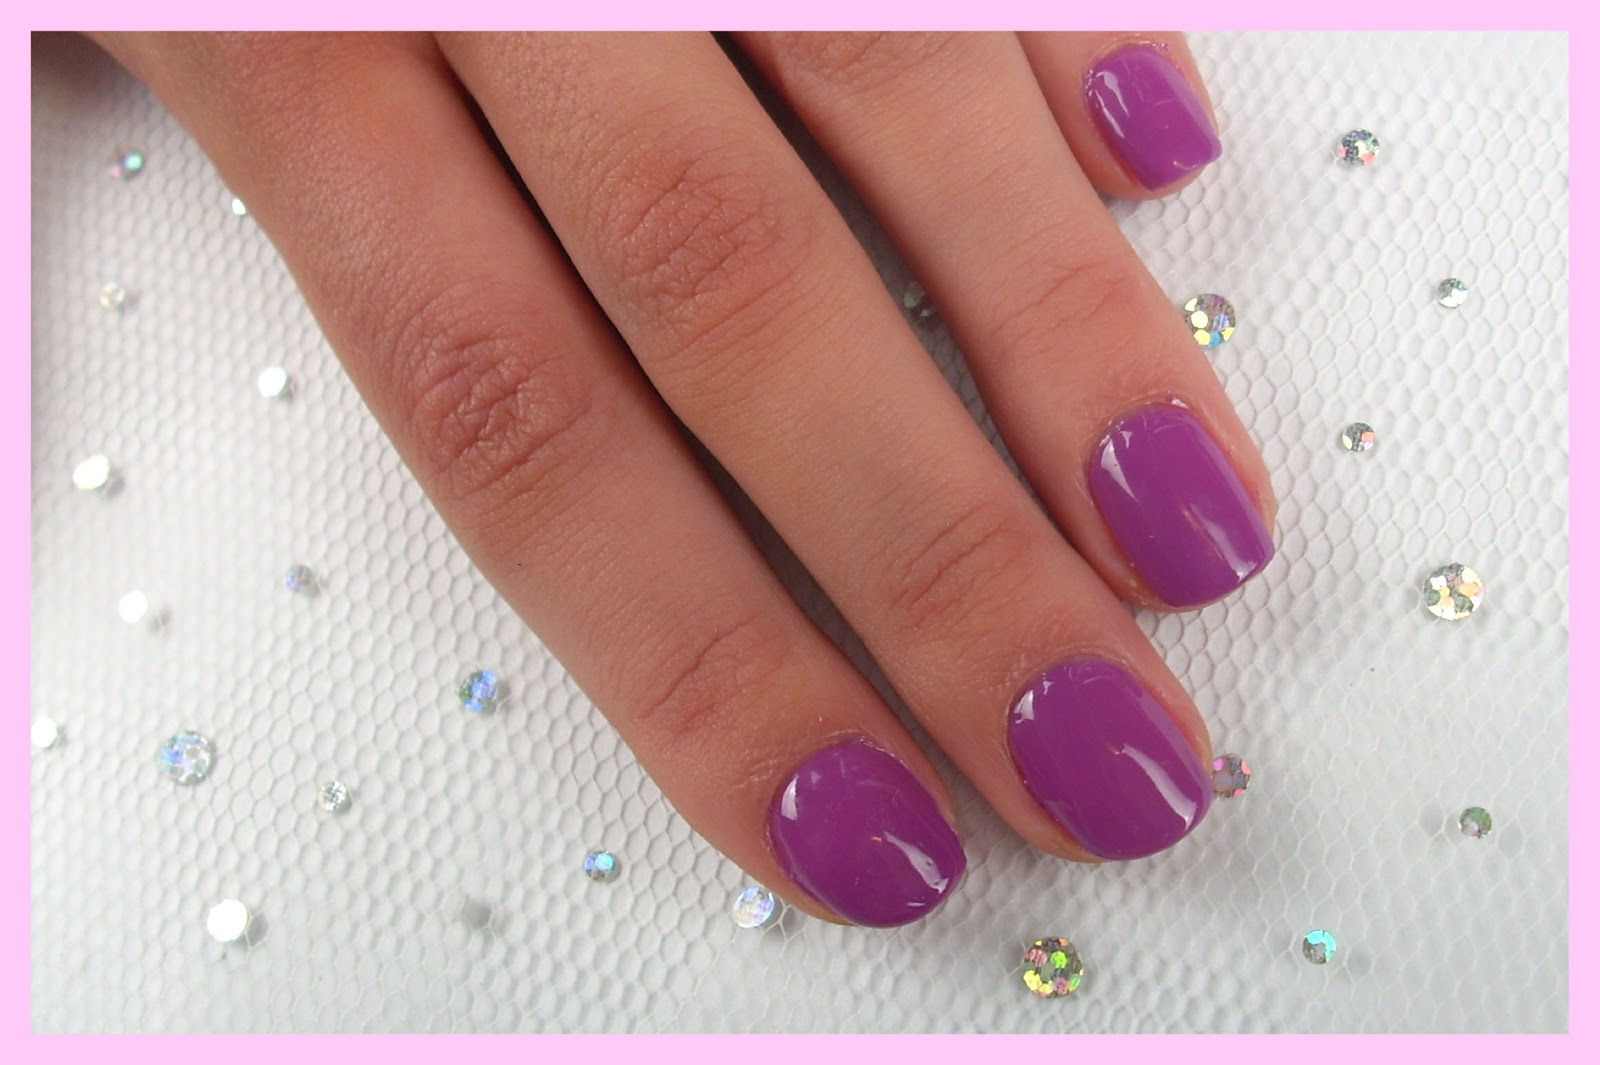 is a great way to give yourself your own soak of gel manicure at home